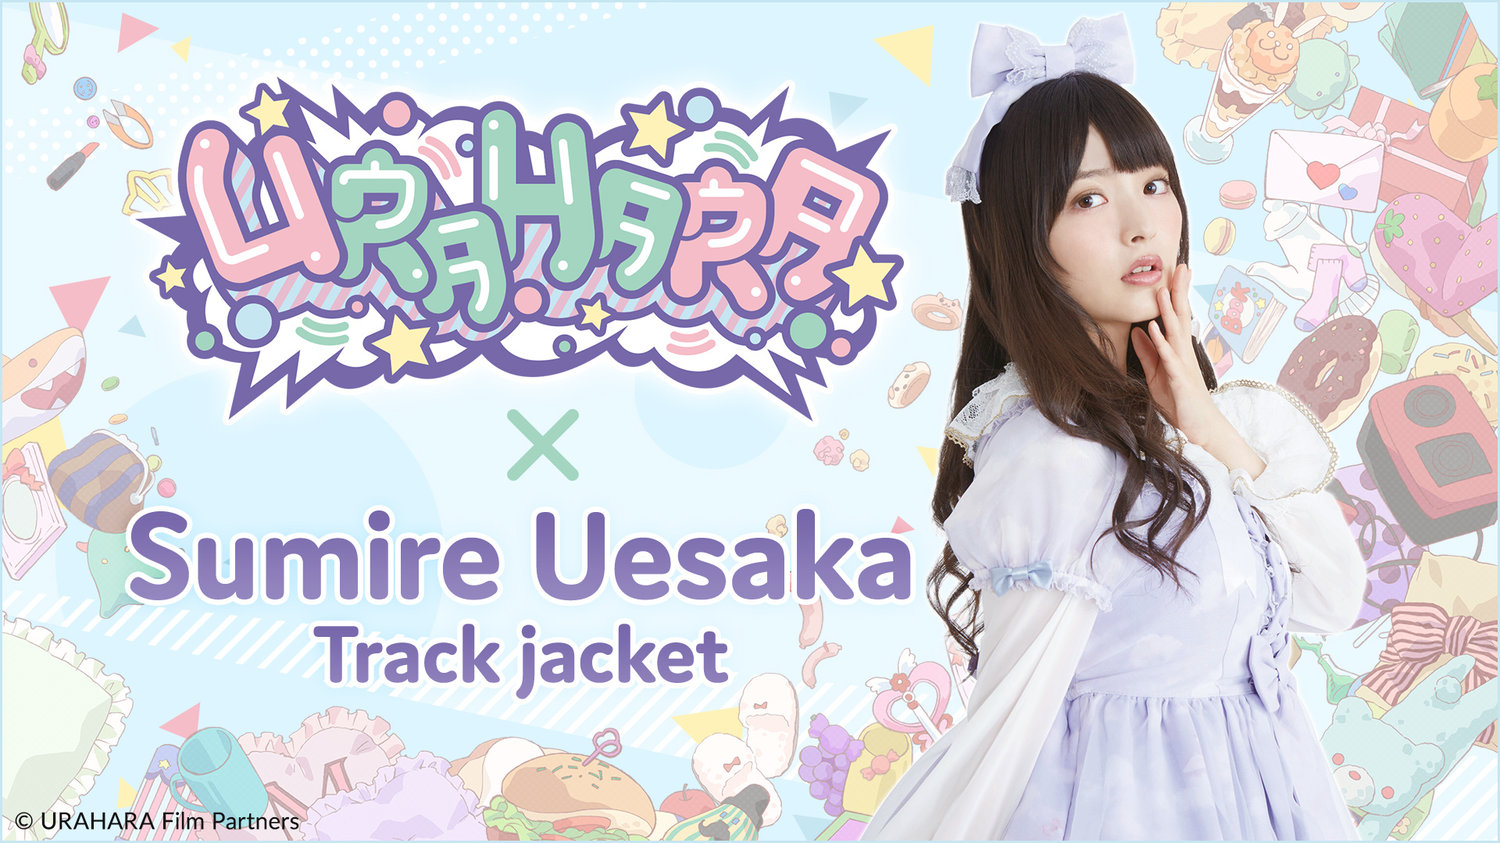 URAHARA x Sumire Uesaka Collaboration Track Jacket